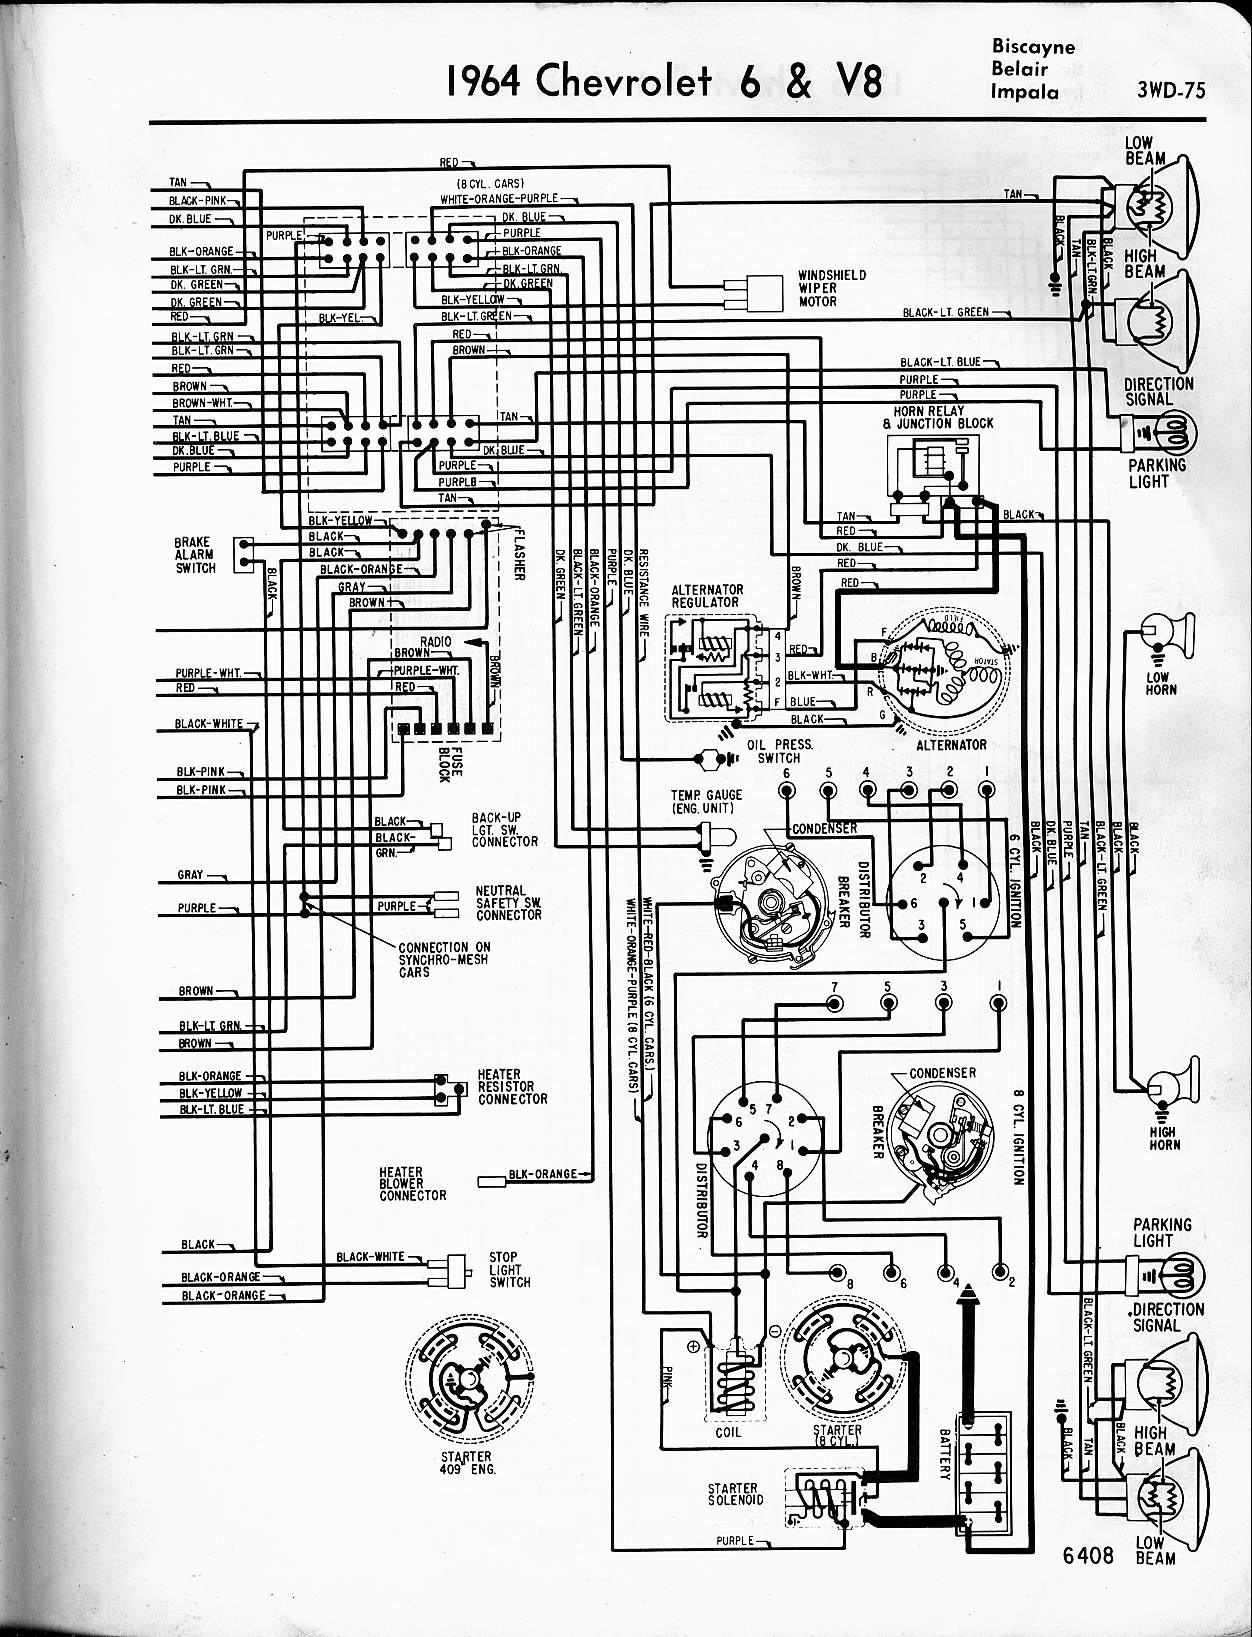 1964 impala wiring diagram layout wiring diagrams u2022 rh laurafinlay co uk 1977 Chevy Wiring Harness Diagram 2007 Chevy Wiring Harness Diagram